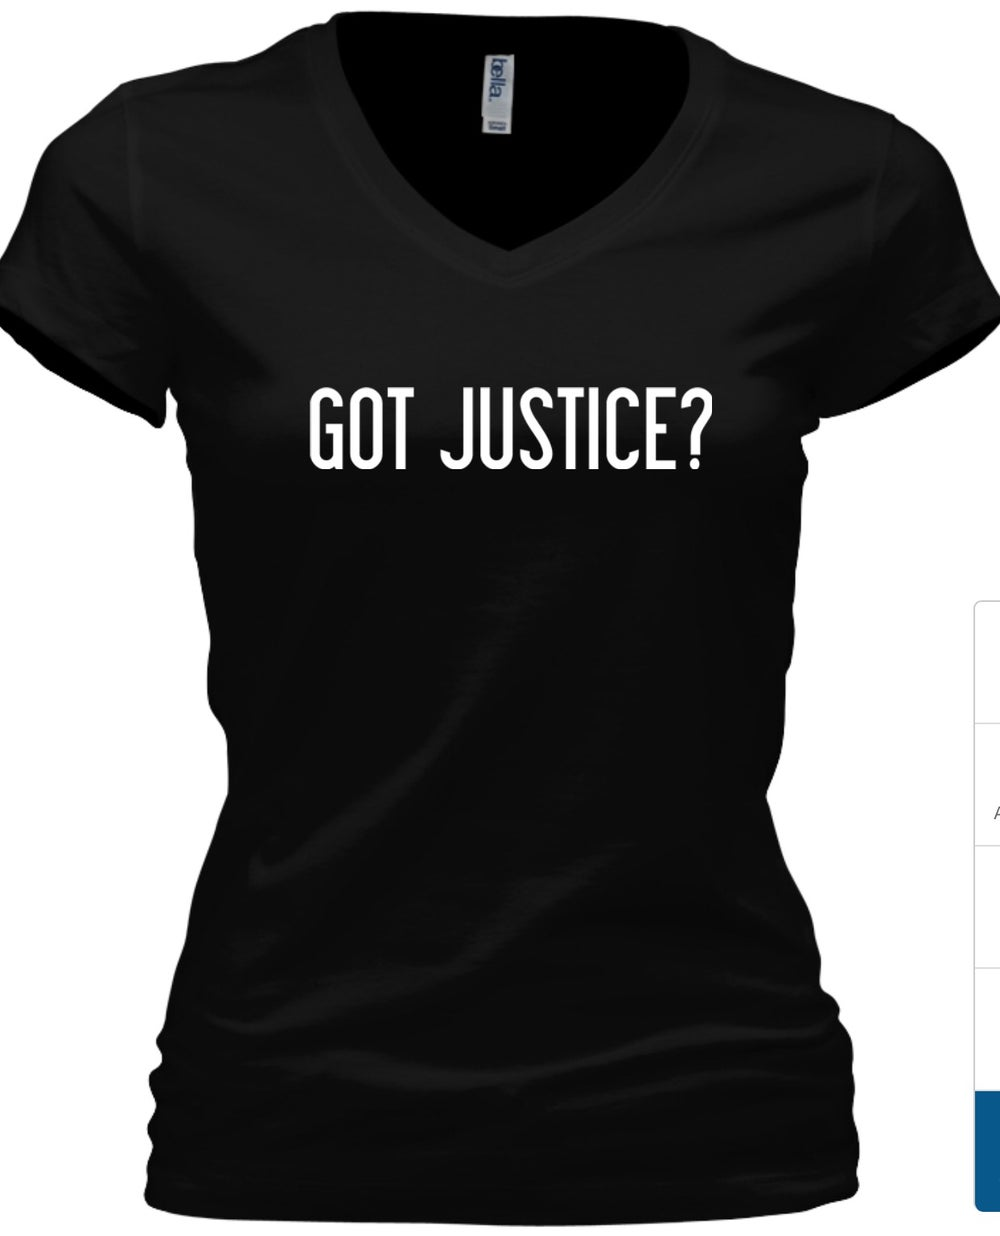 Image of WOMEN'S GOT JUSTICE? V-NECK T-SHIRT (Tshirt will reflect Jeremiah 22:3)